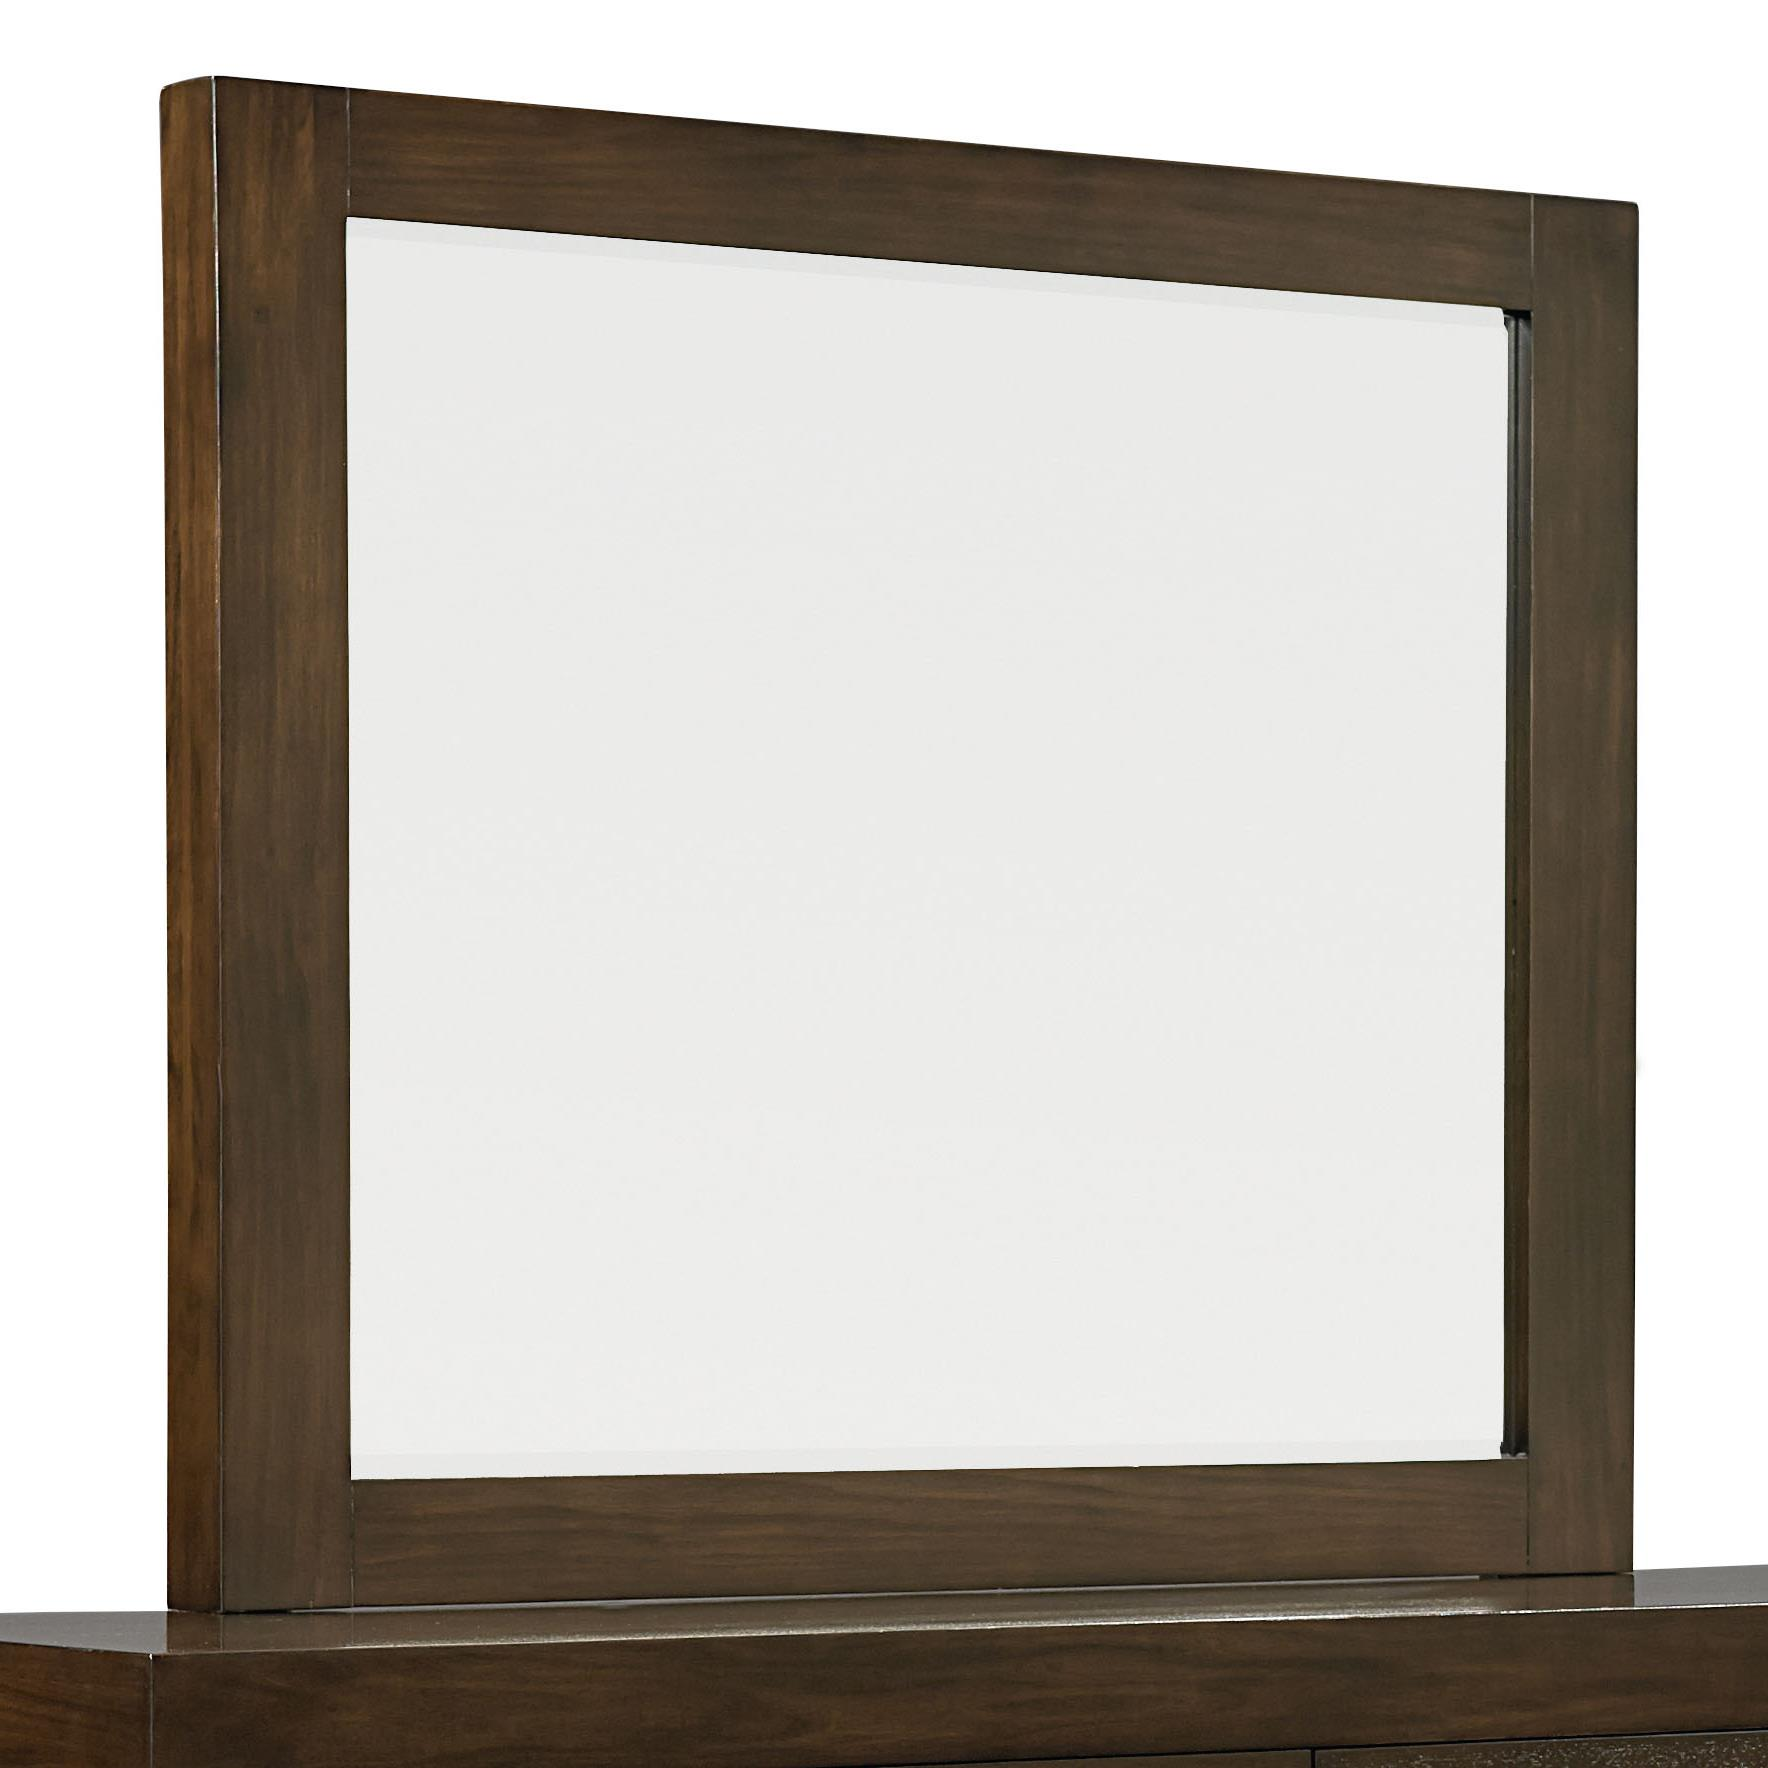 Standard Furniture Couture Mirror                         - Item Number: 81558